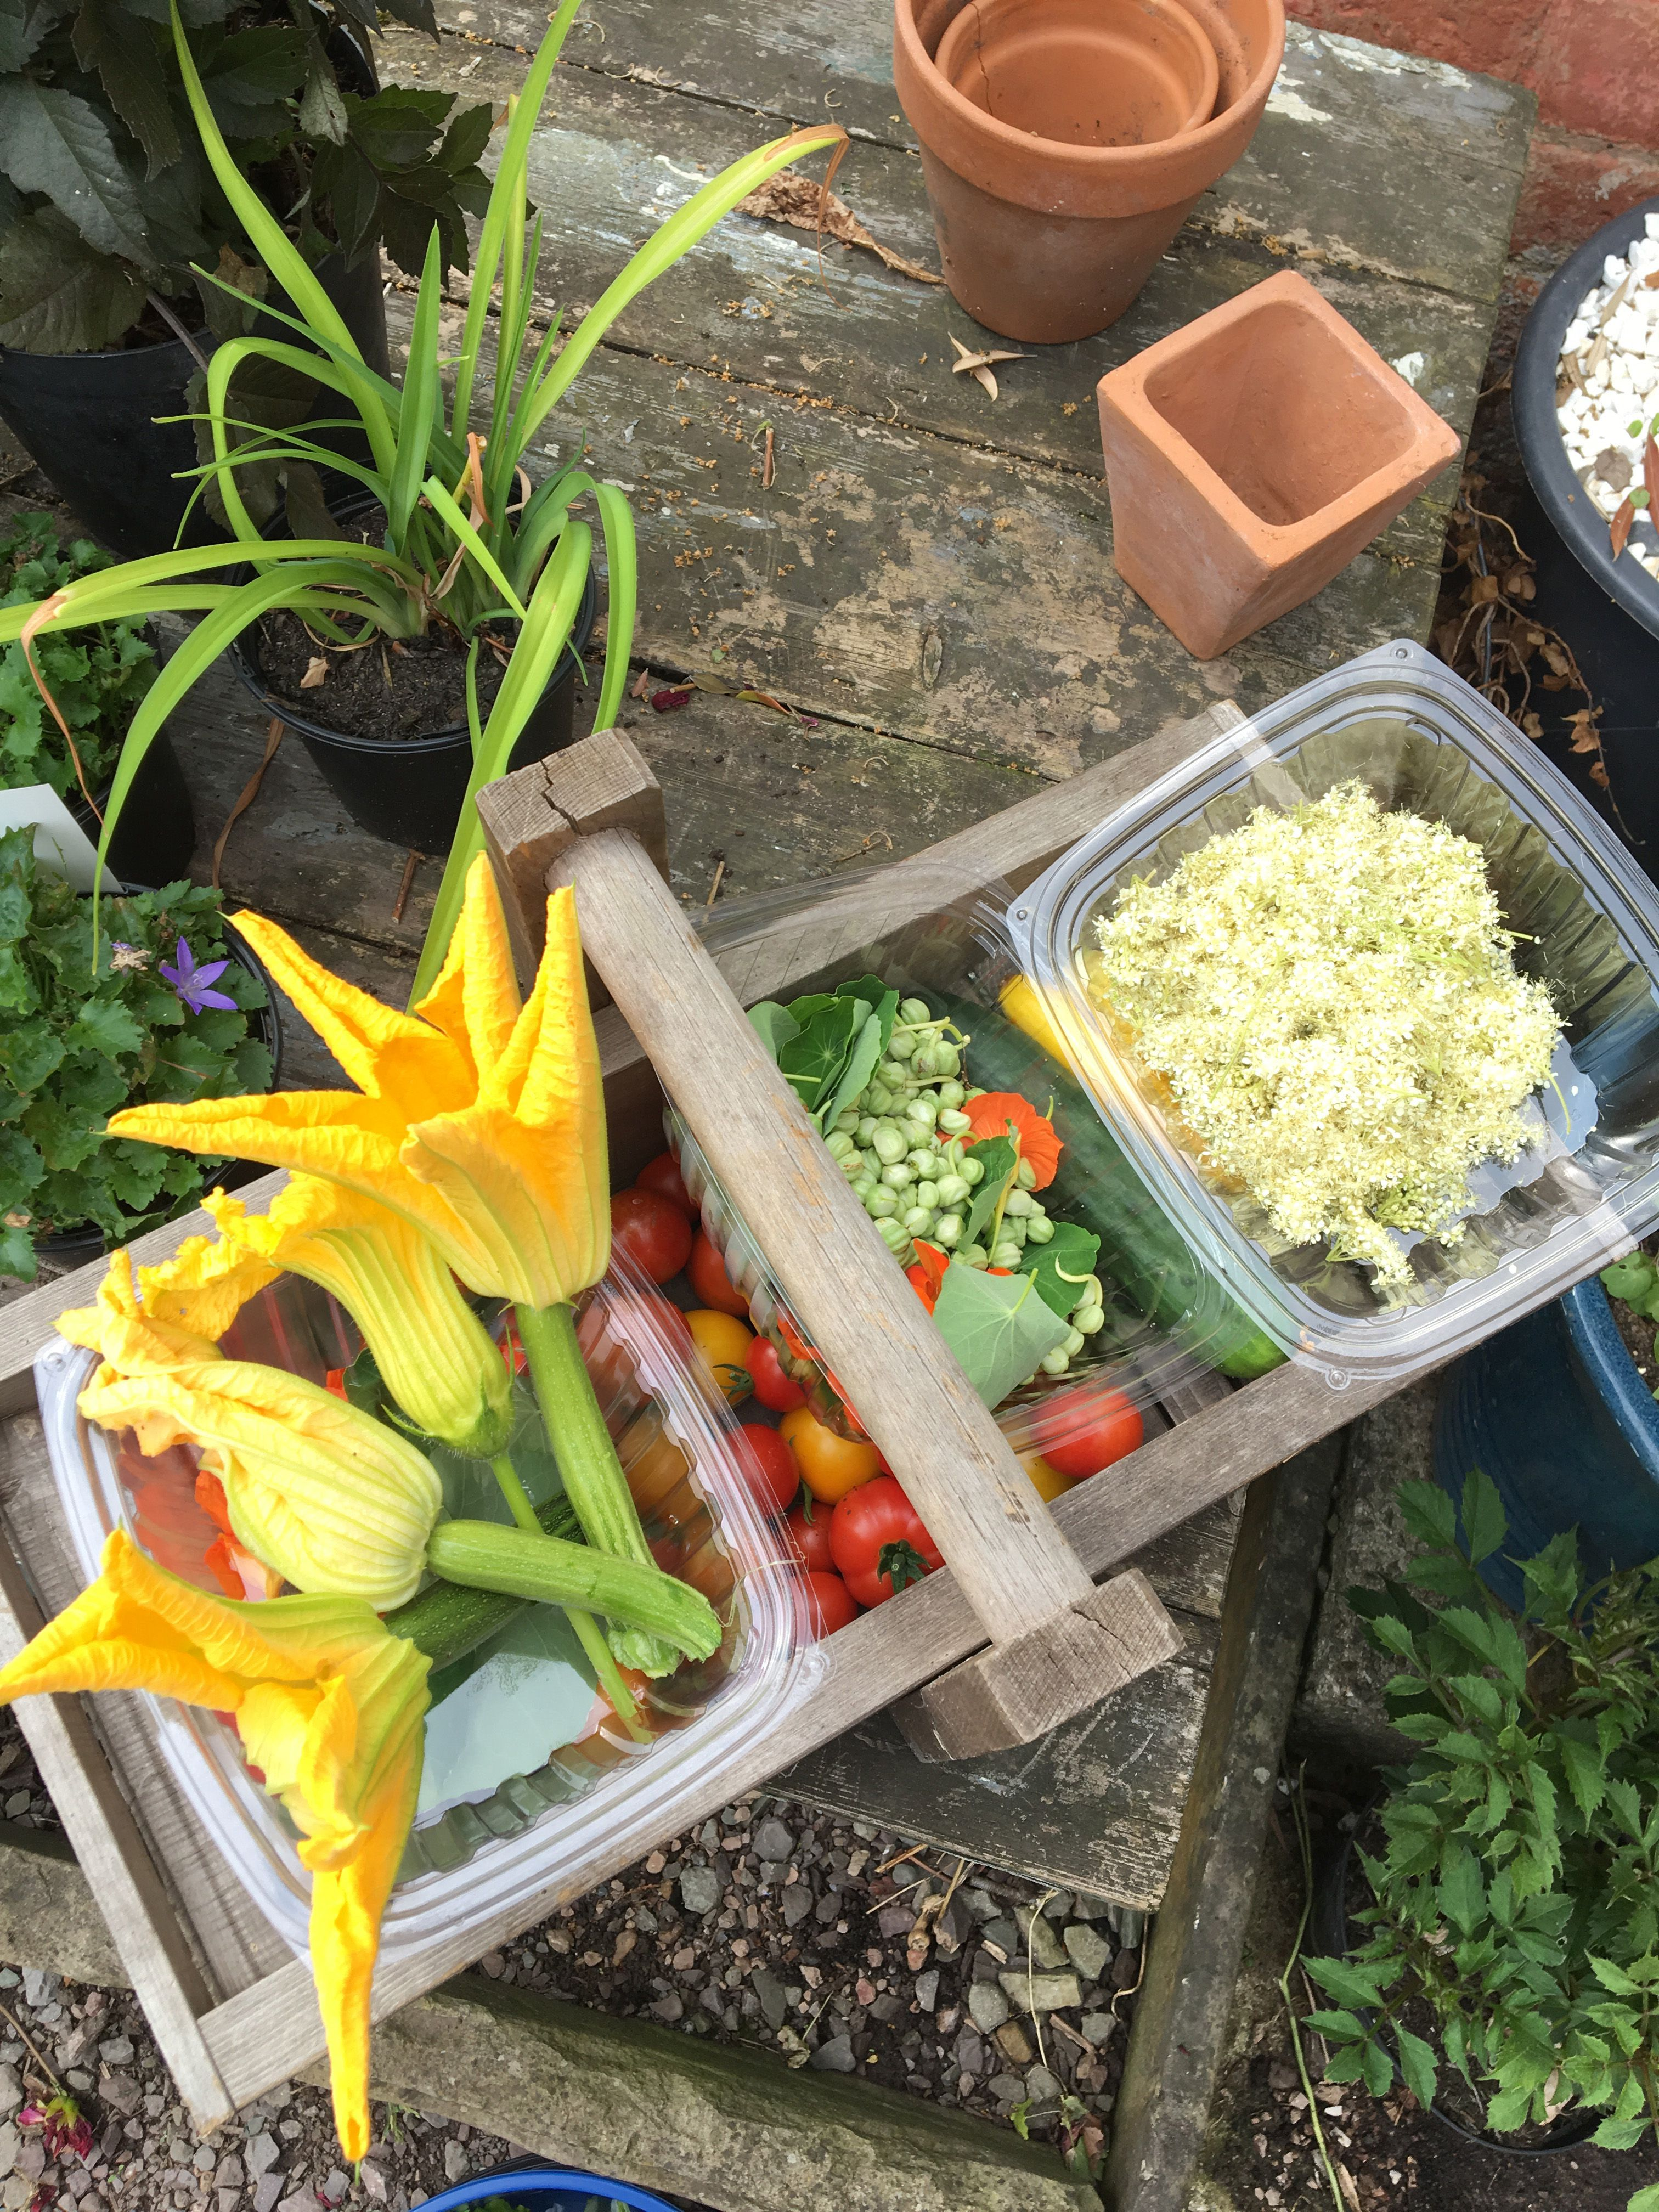 We learnt how to cook with edible plants and flowers in Abergavenny, Wales